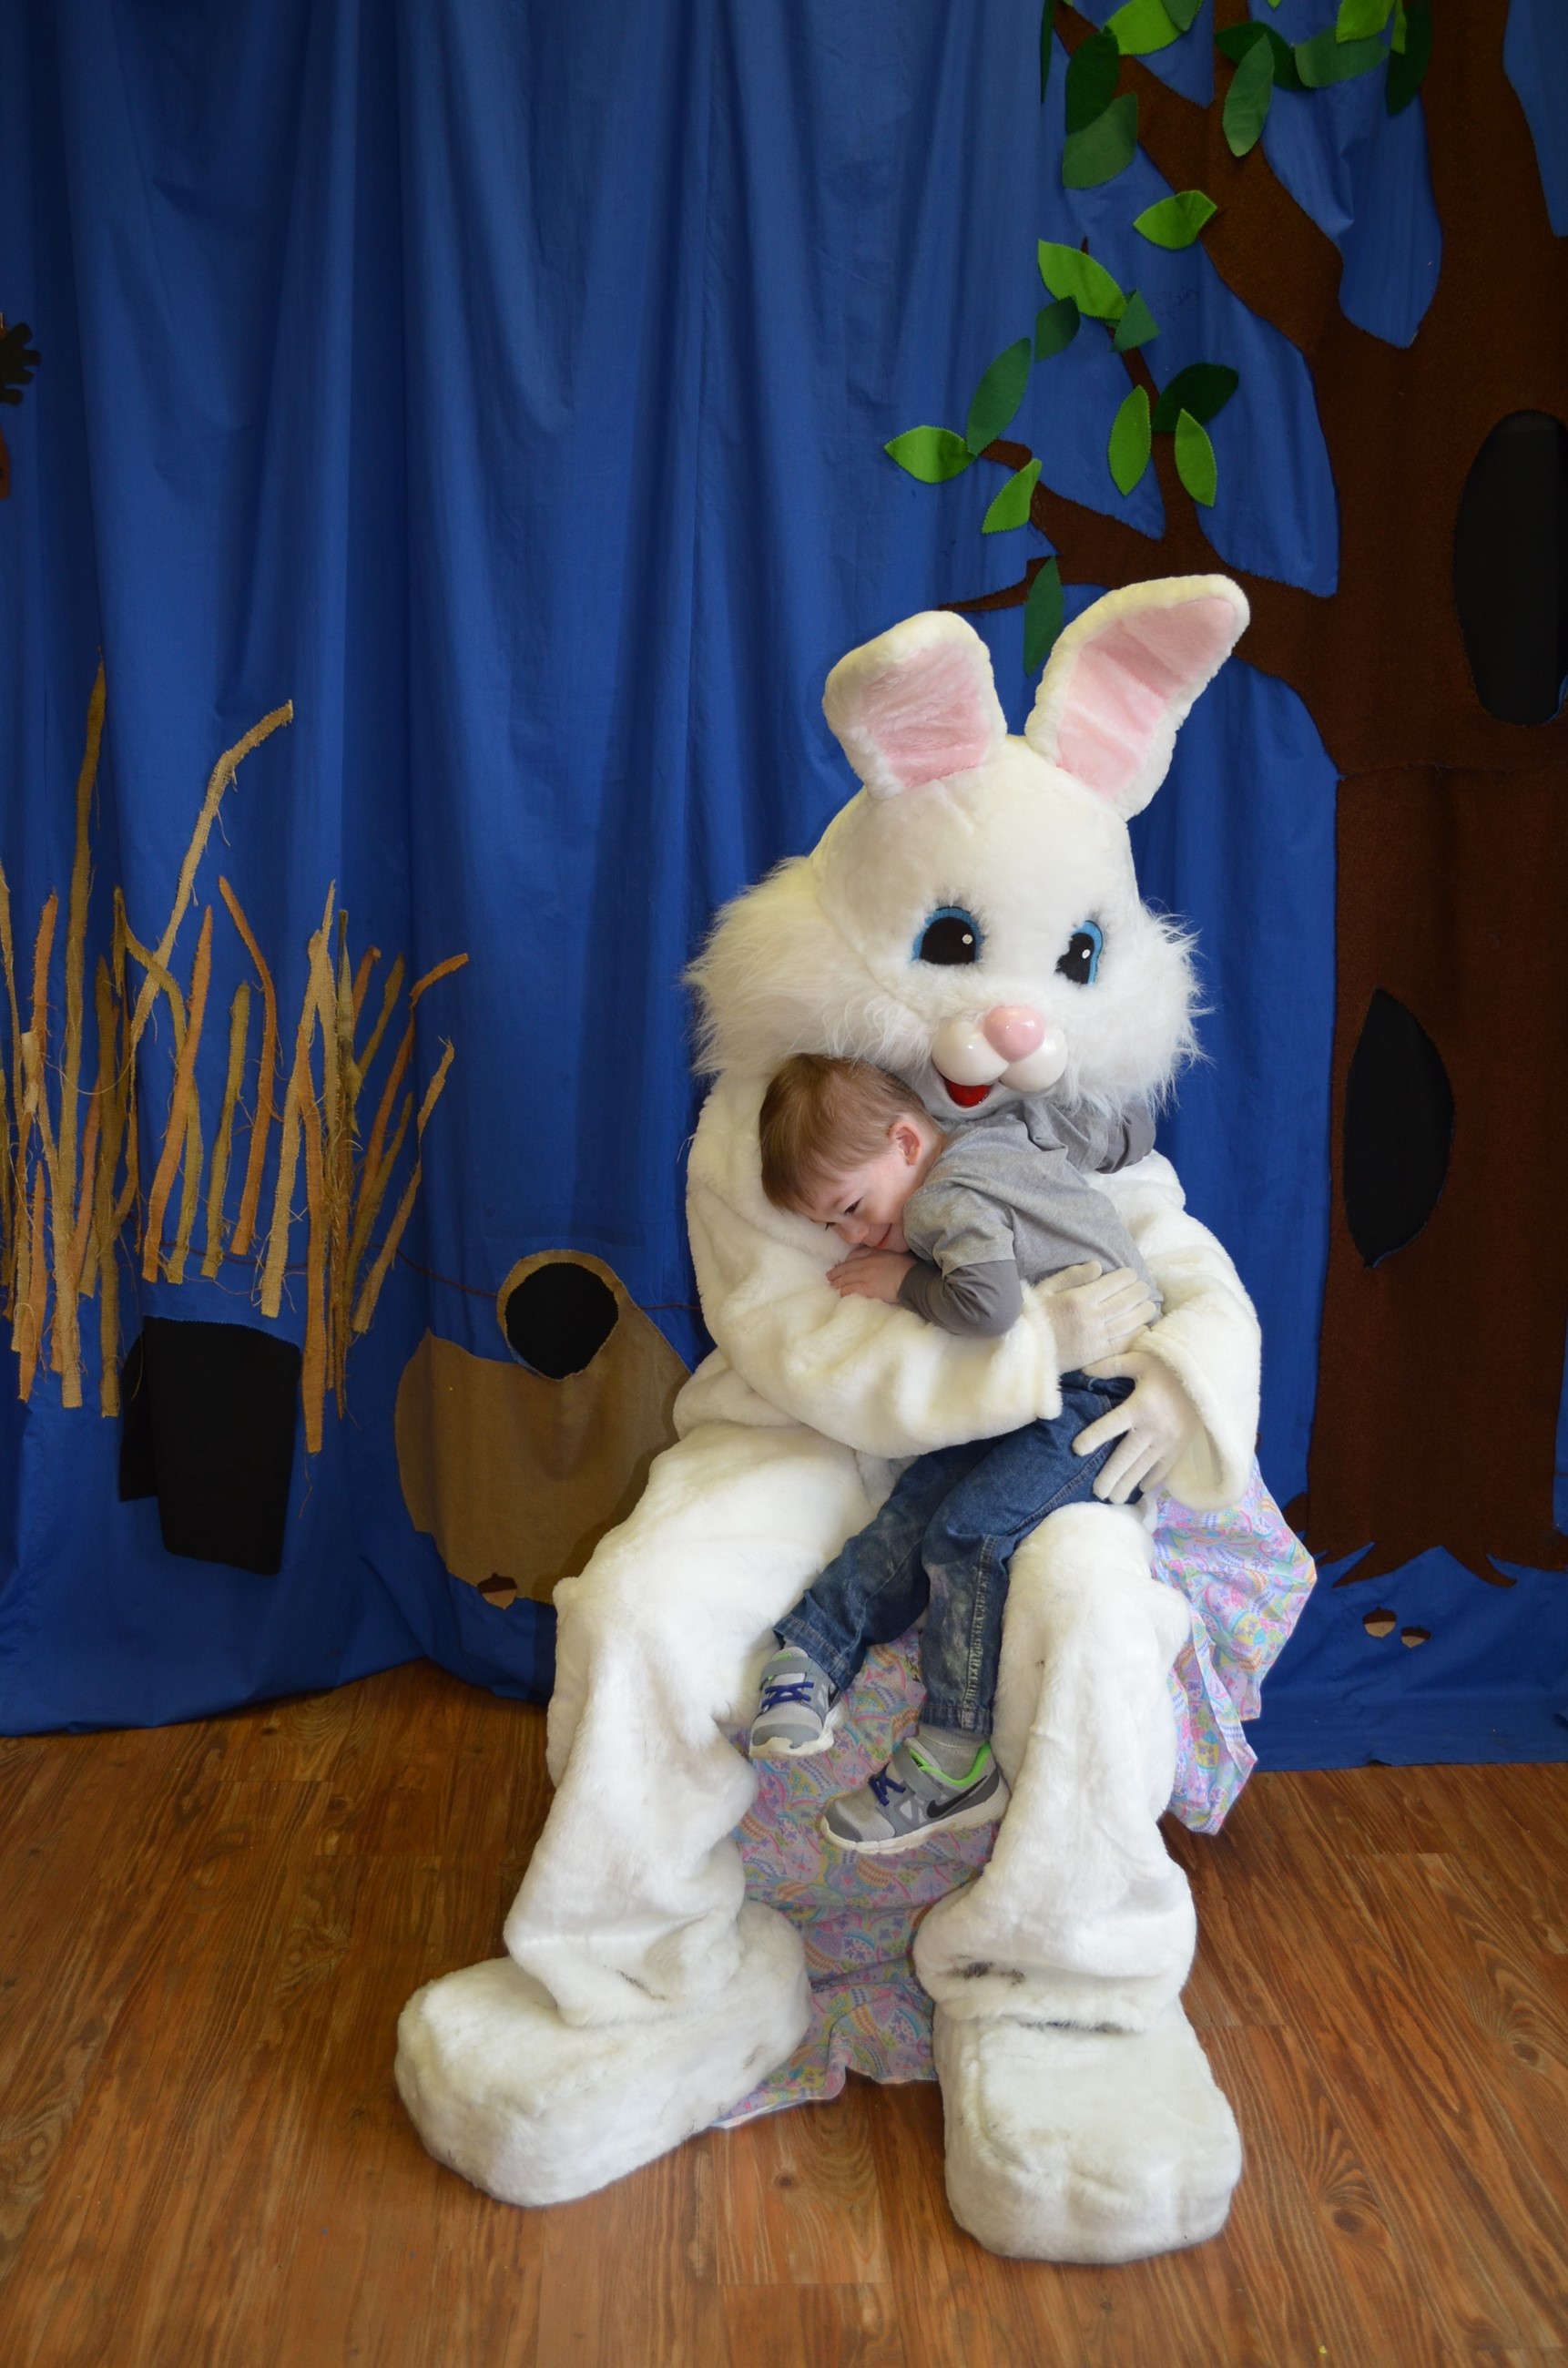 Boy Hugging Easter Bunny.JPG